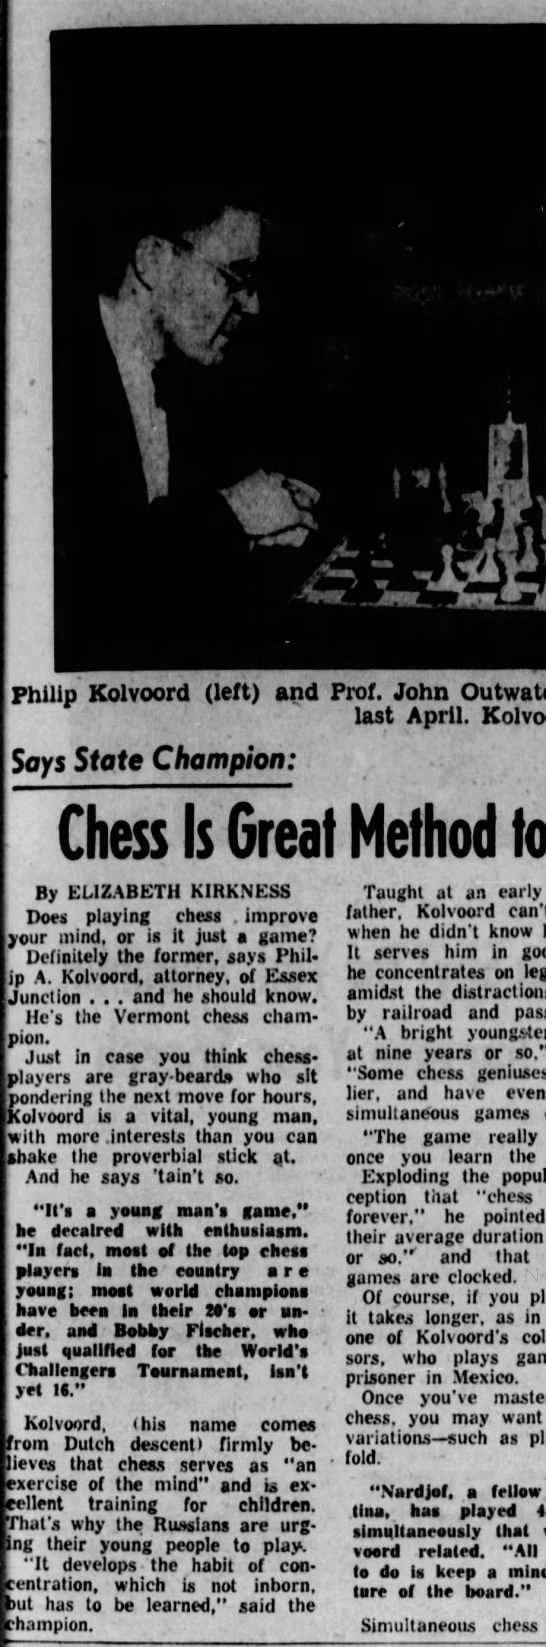 Chess is Great Method to Improve Mind by Elizabeth Kirkness (Column 1) -